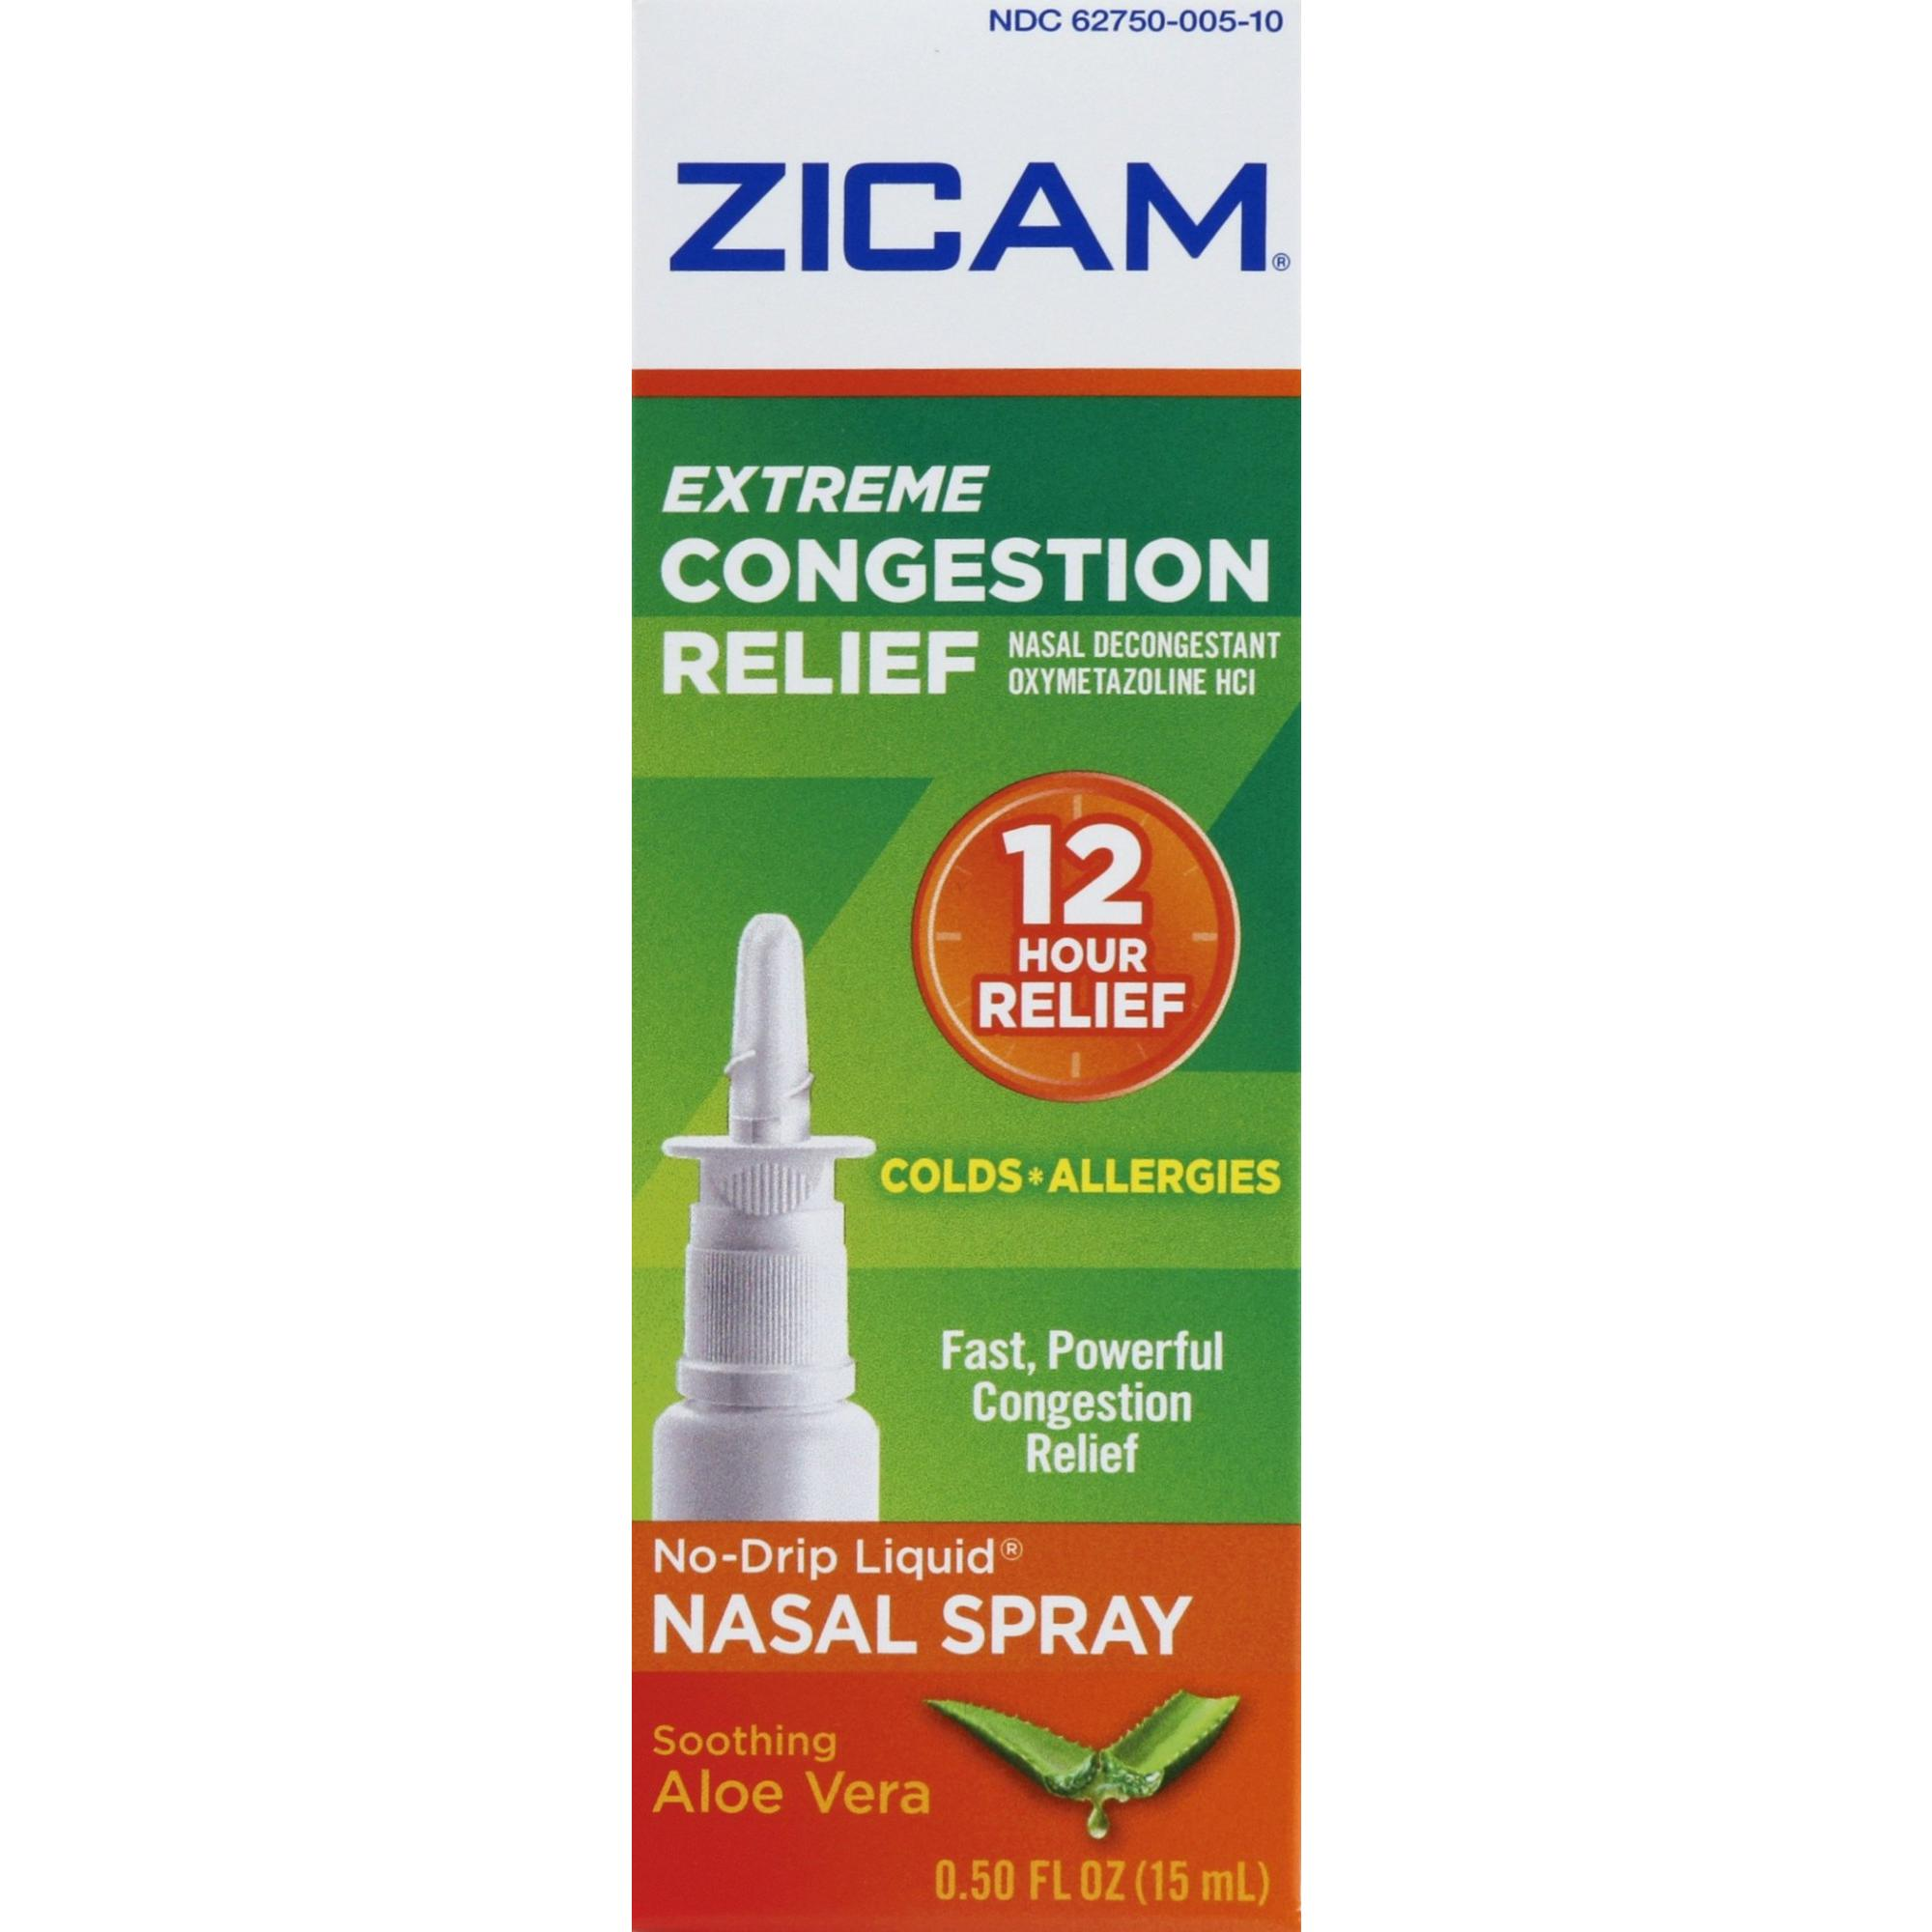 Zicam Extreme Congestion Relief No-Drip Liquid Nasal Gel with Soothing Aloe Vera, 0.5 Ounce - Nasal Decongestant